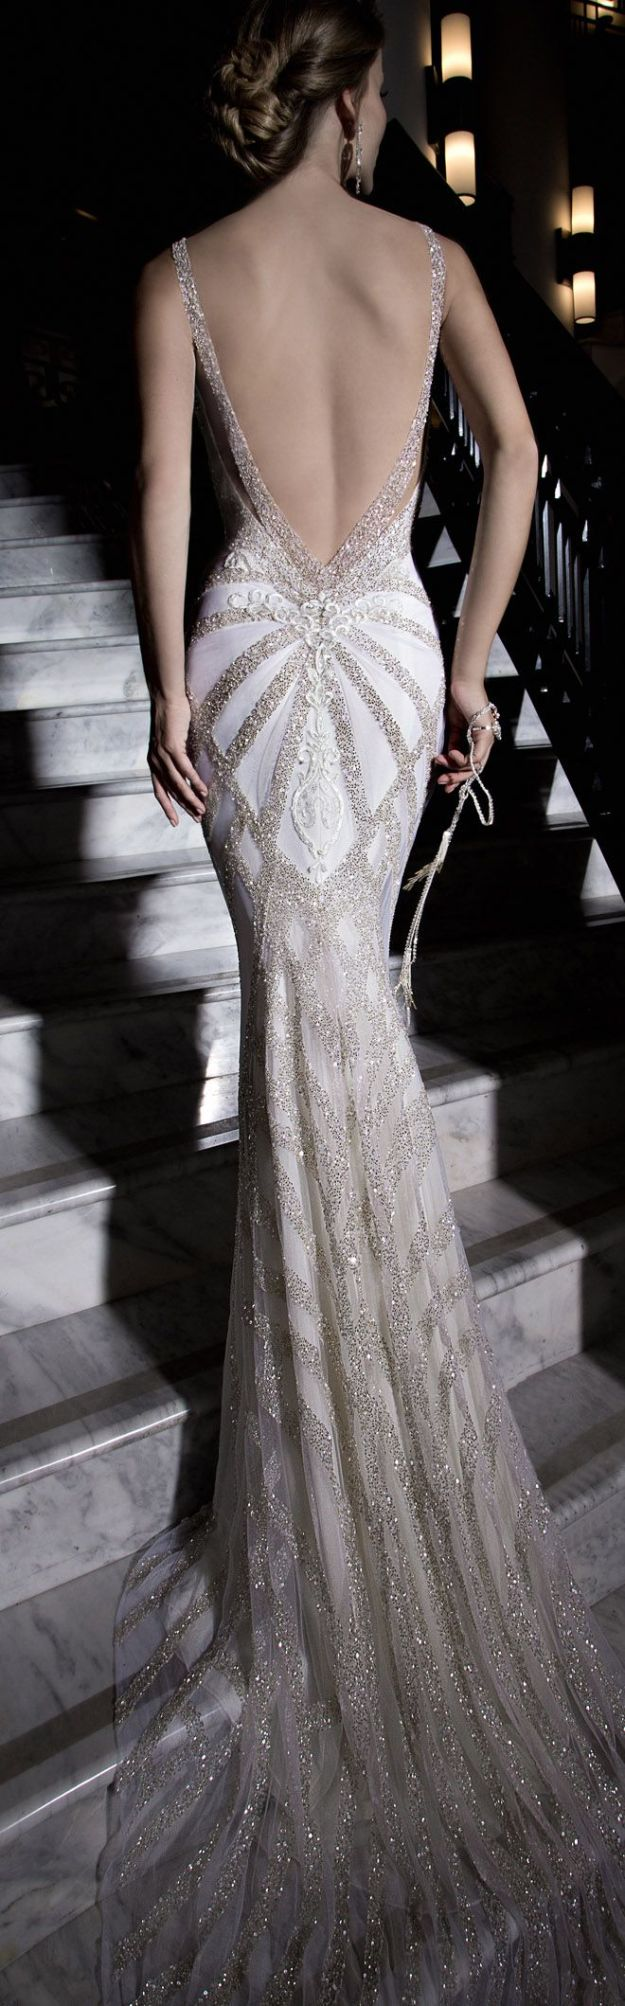 Galia Lahav Backless